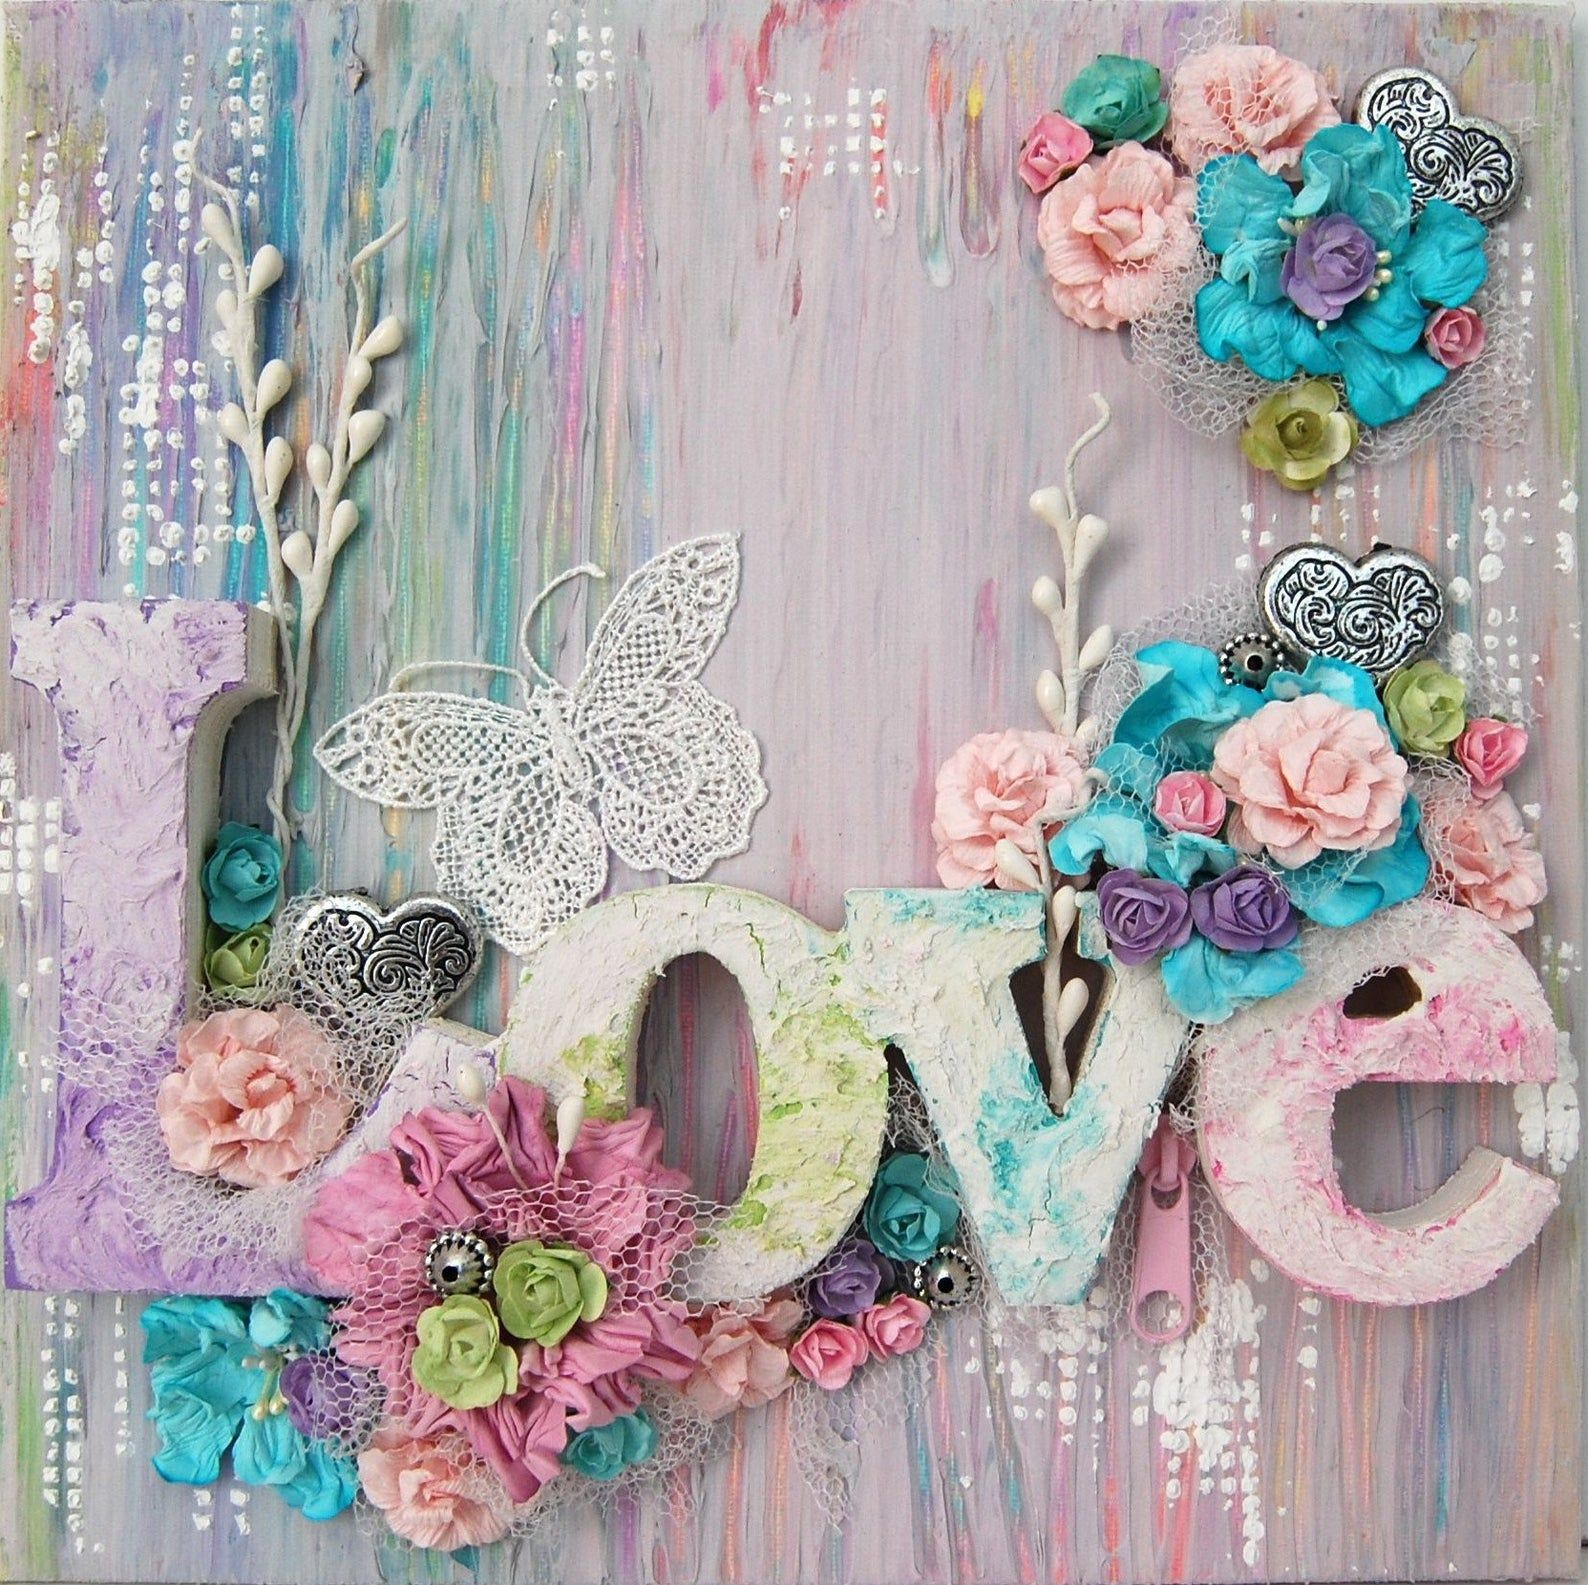 5D DIY Diamond Painting Kit Love Flower Butterfly Embroidery Cross Stitch Rhinestone Mosaic Painting Home Decor Gift